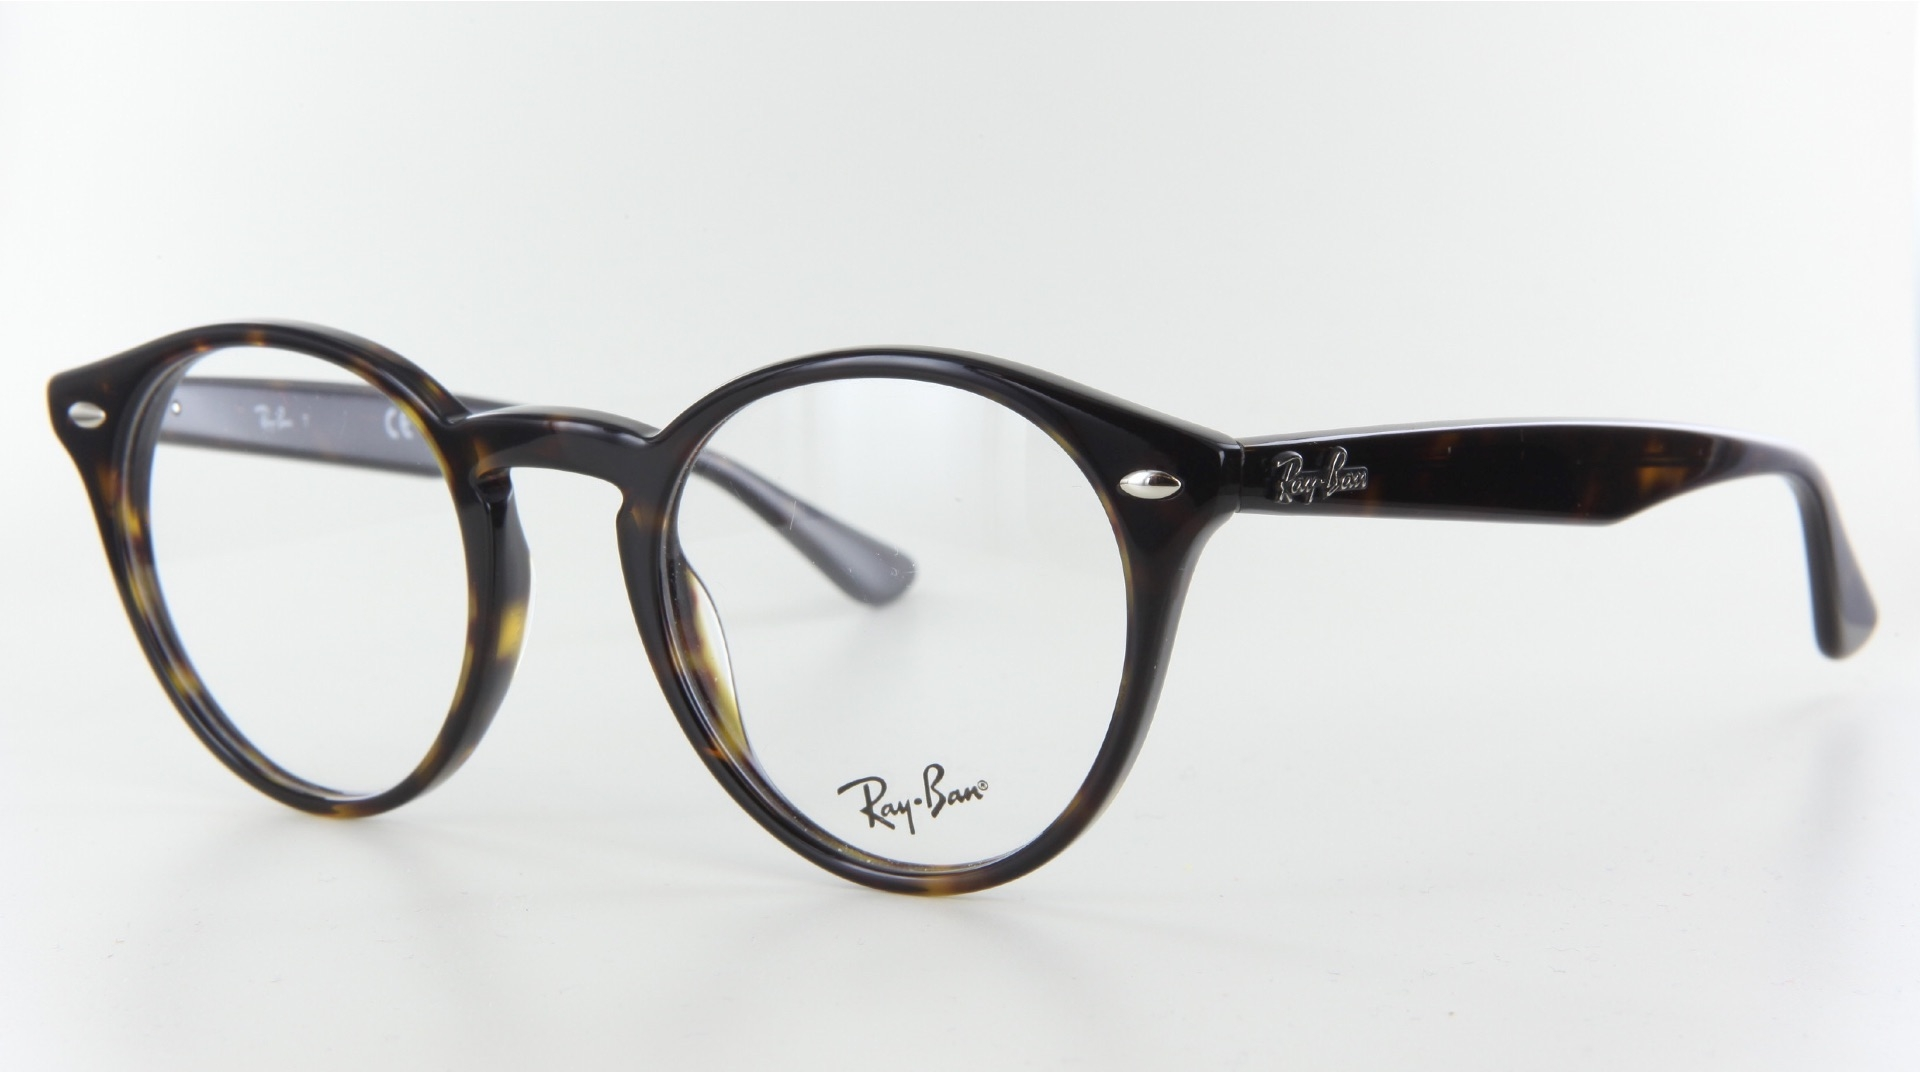 Ray-Ban - ref: 73620